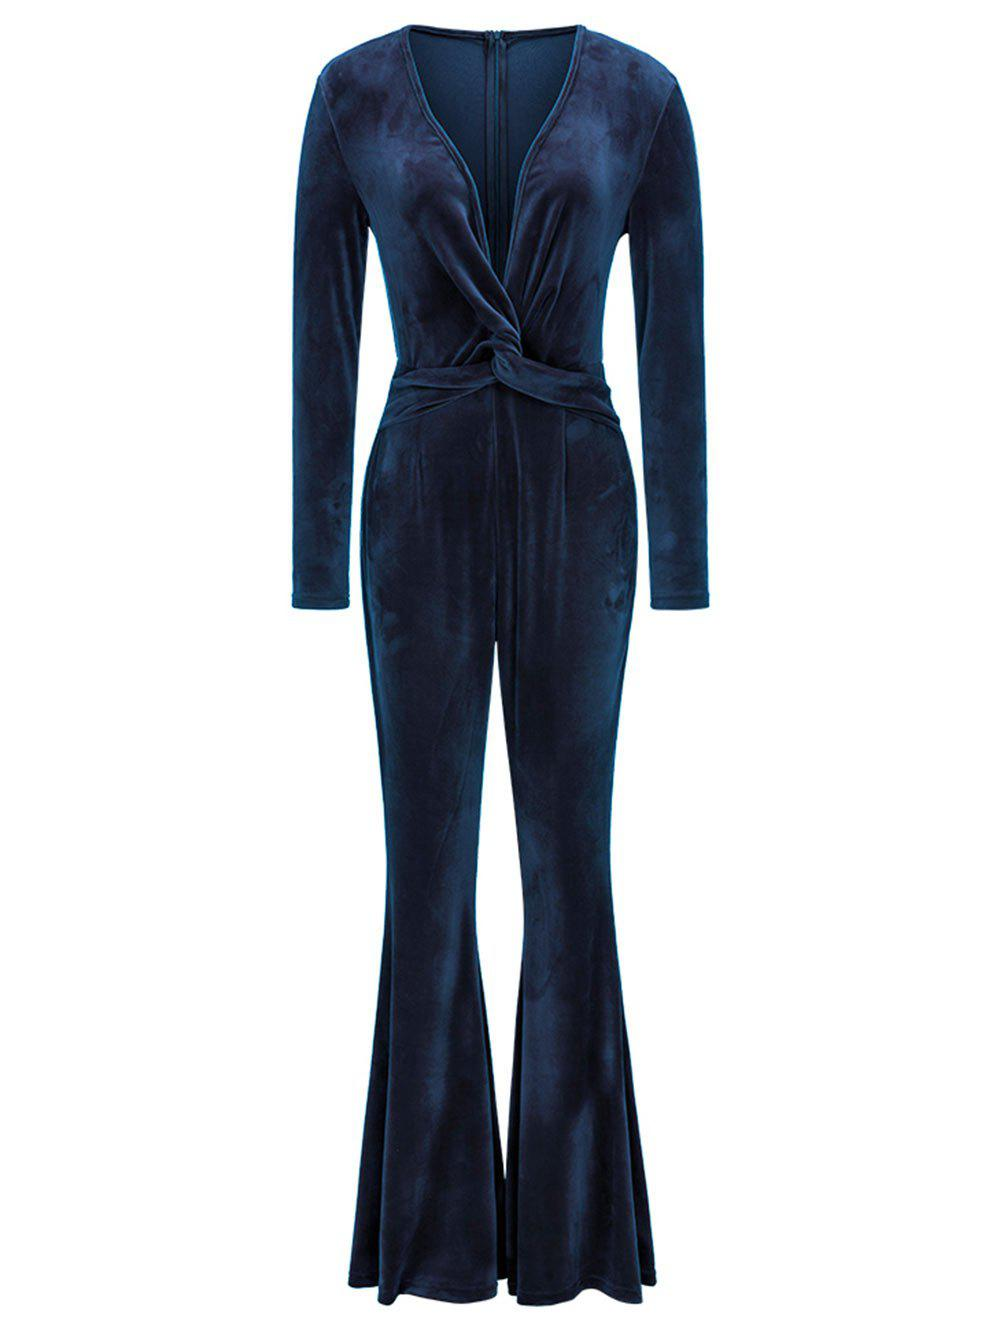 Twist Plunging Neck Flared Leg Jumpsuit - CADETBLUE L